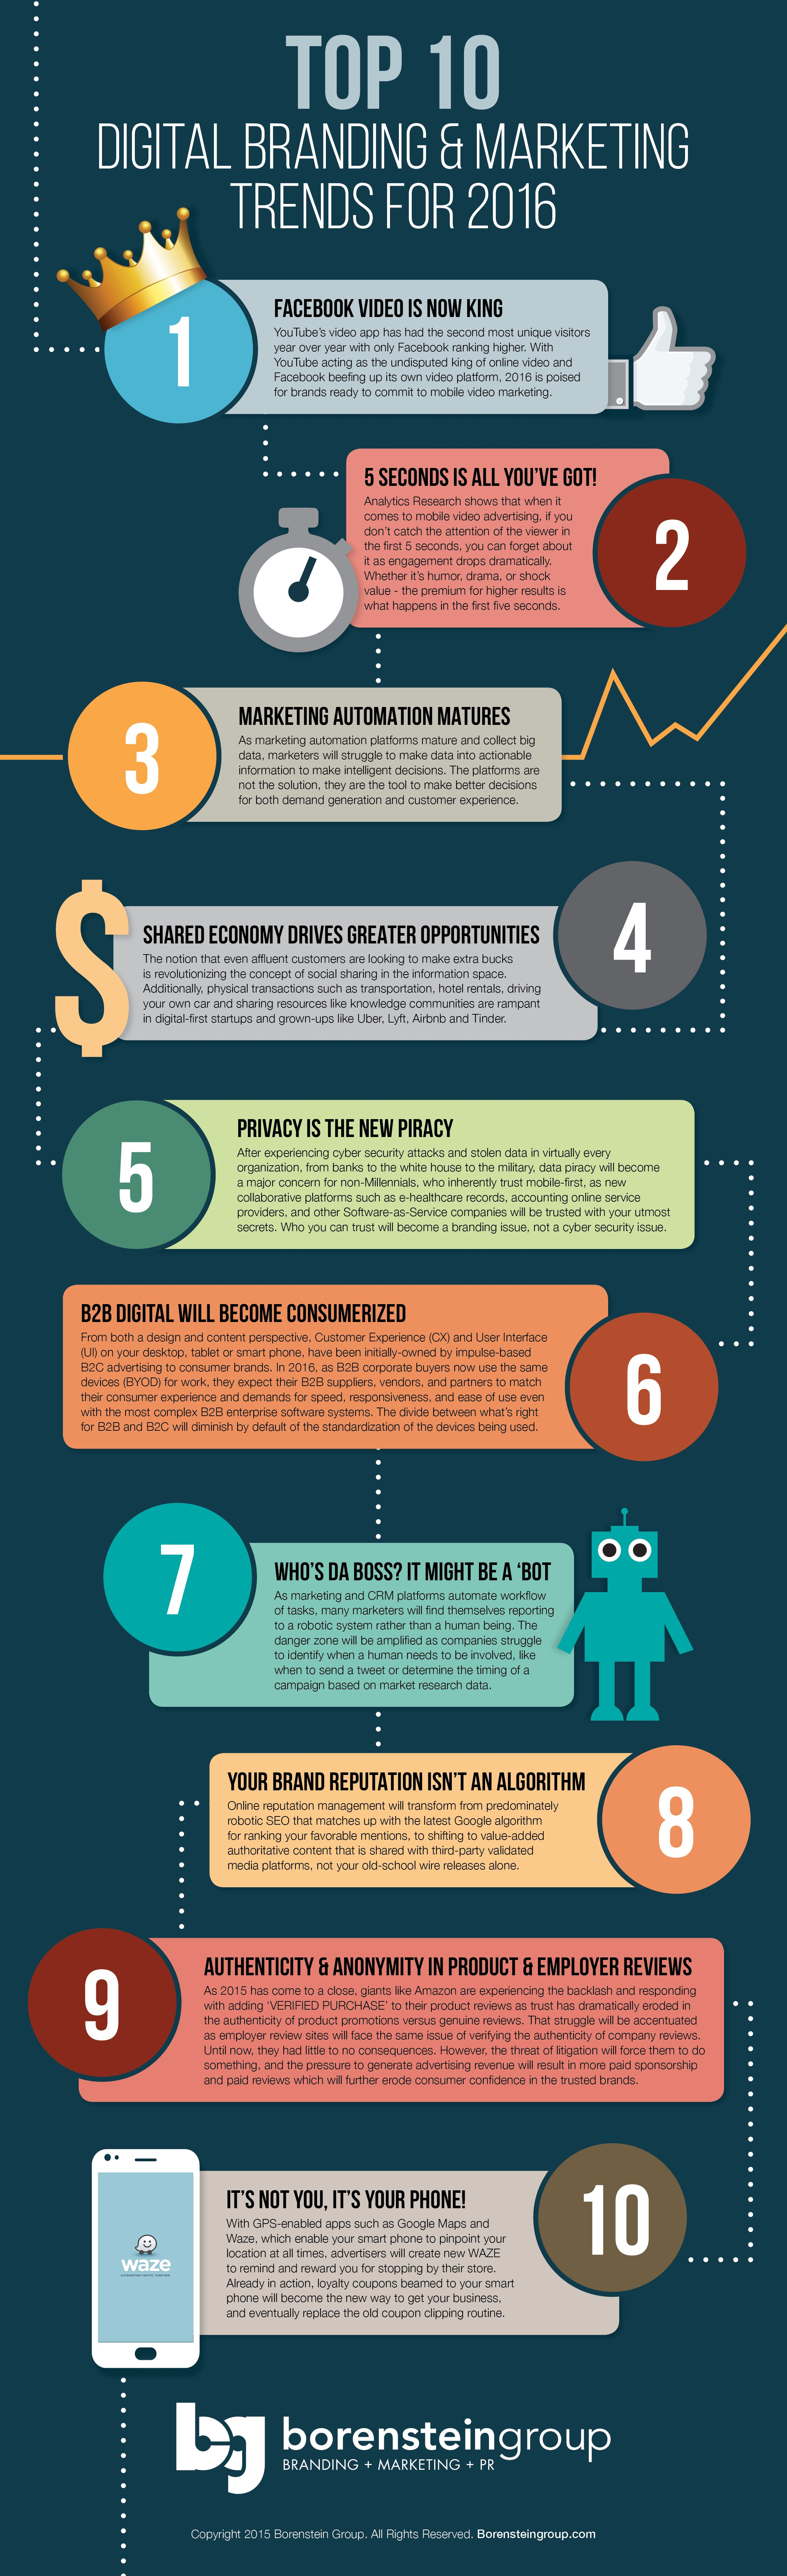 Top 10 digital trends infographic